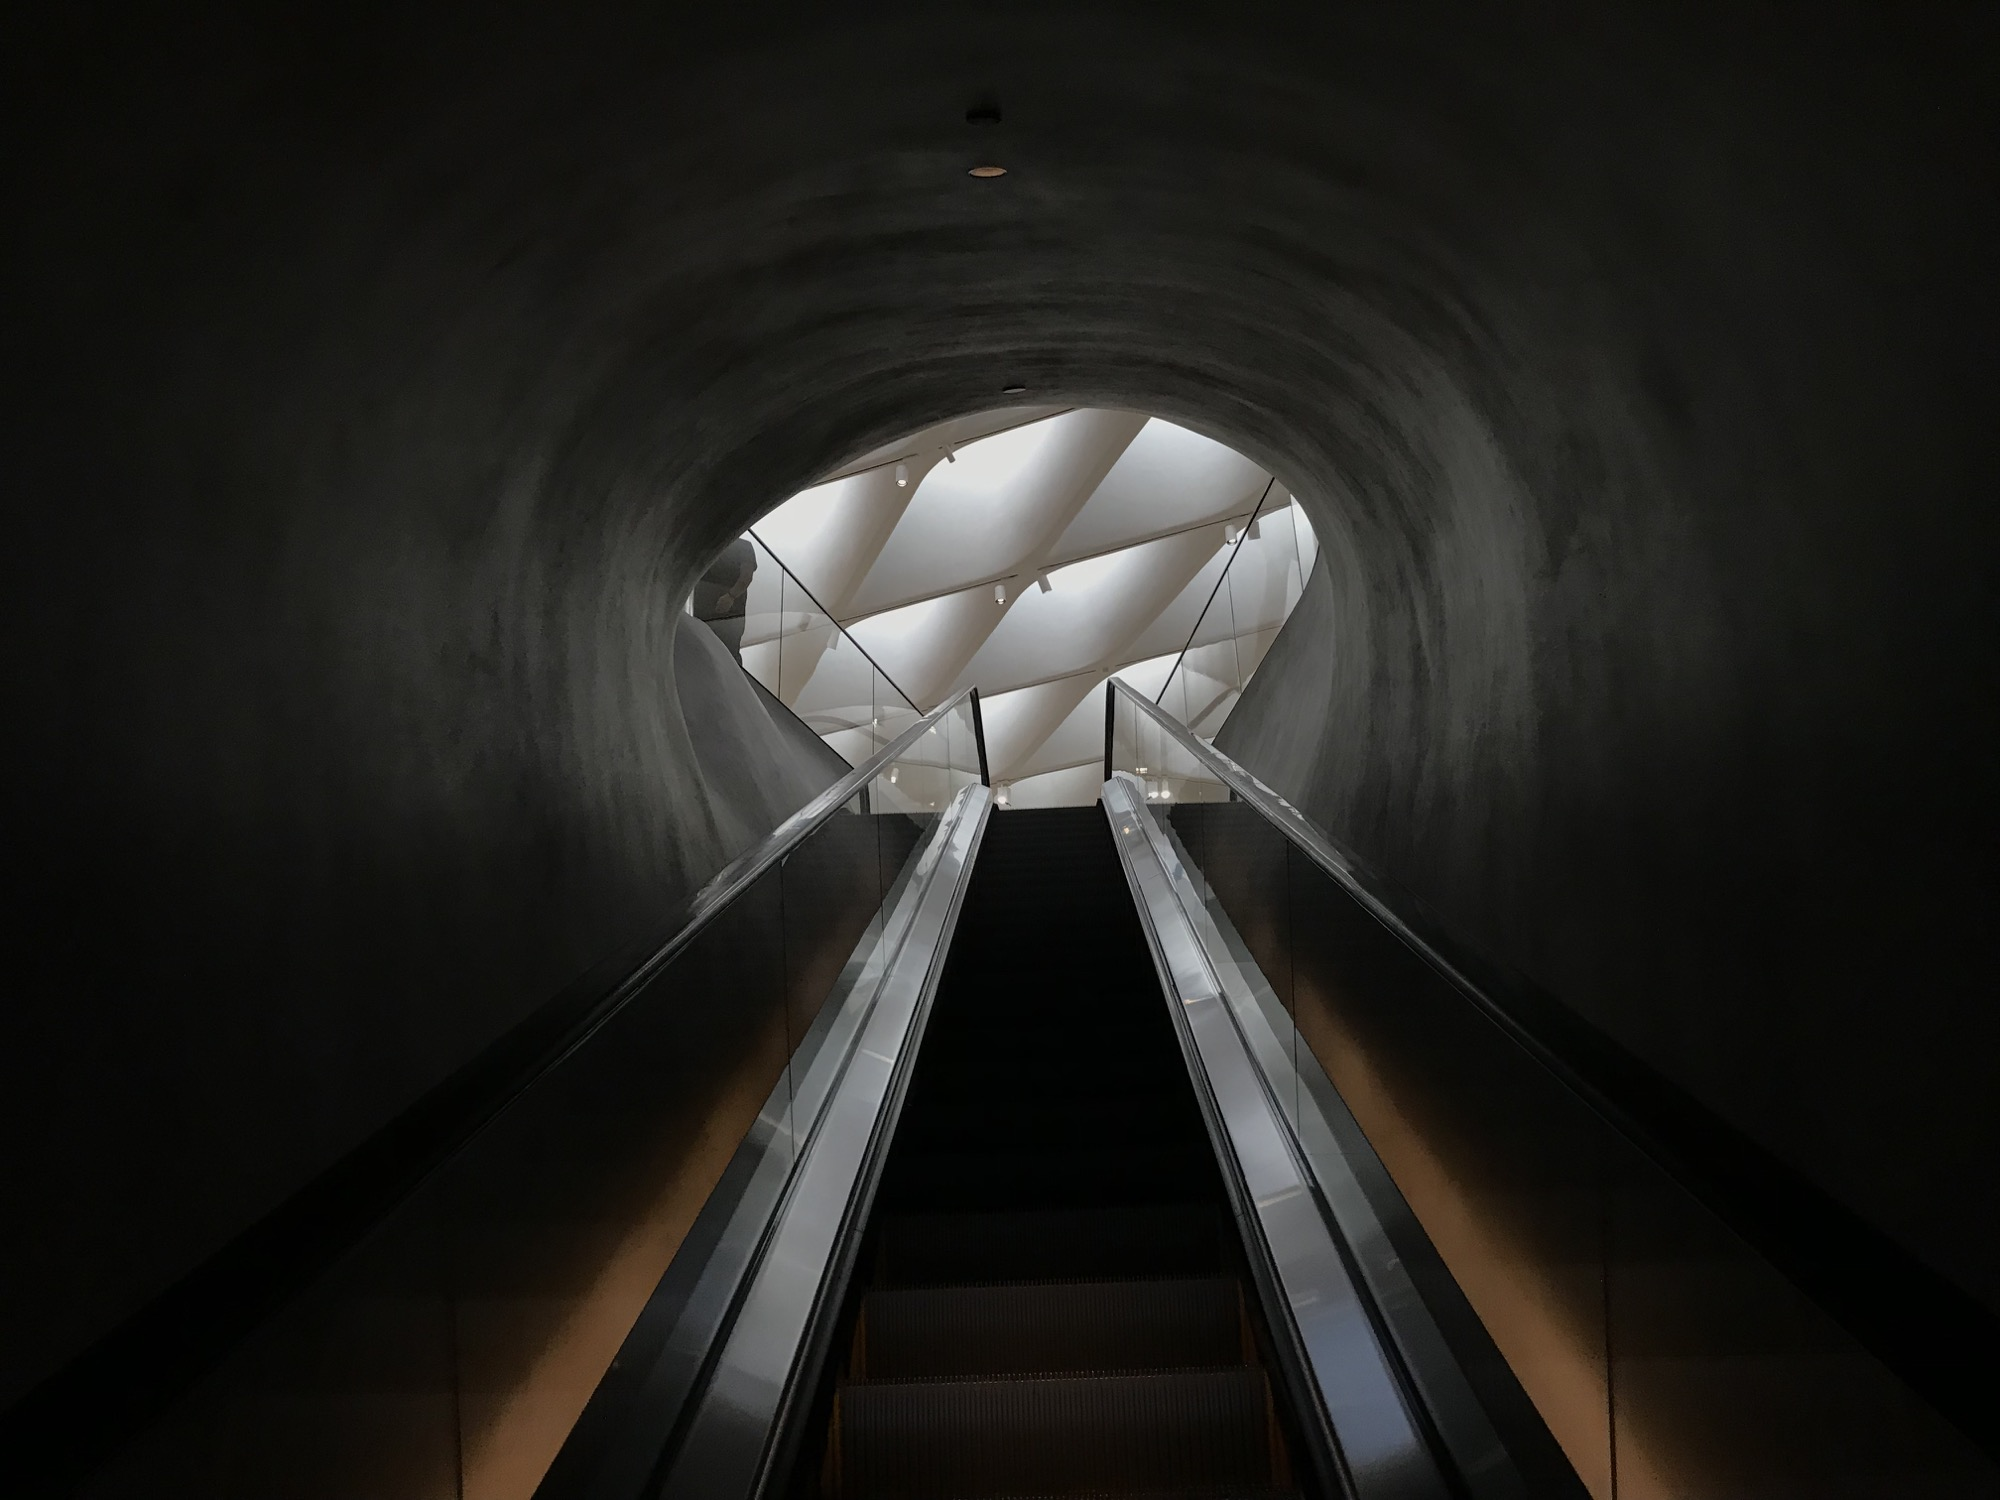 Photo of escalator in The Broad museum (Los Angeles).